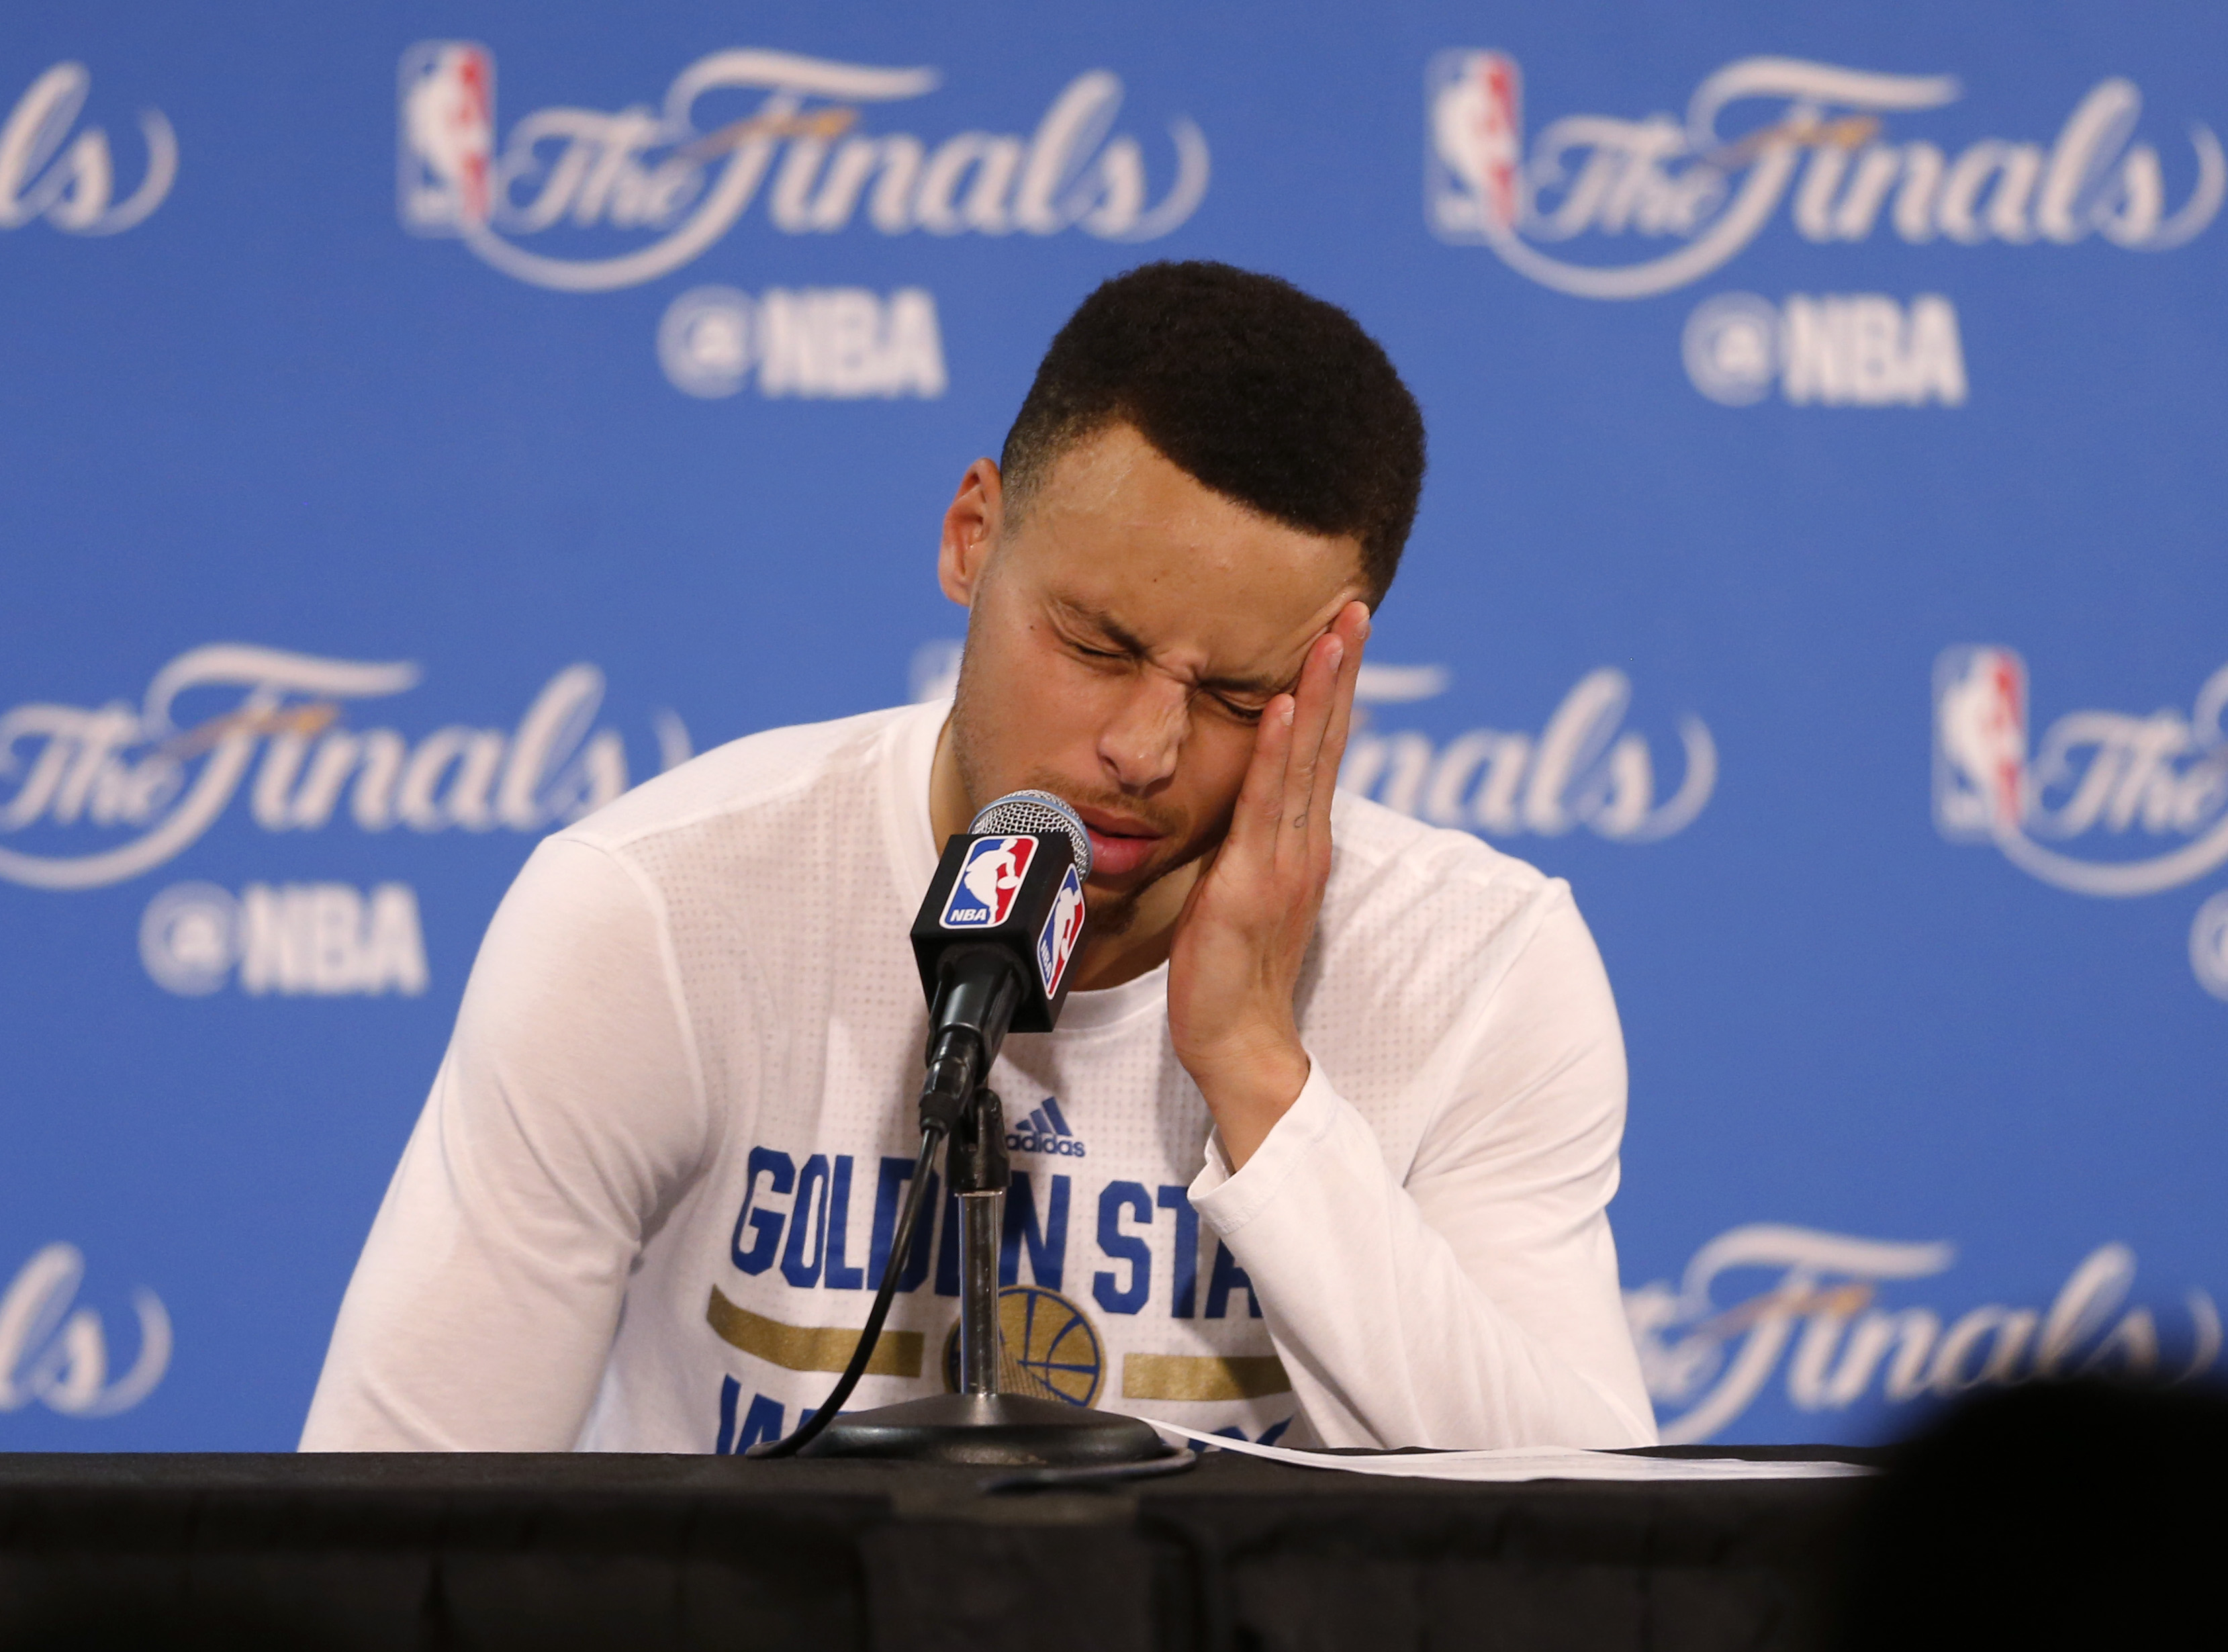 Golden State Warriors' Stephen Curry (30) answers questions during a press conference after the Cleveland Cavaliers beat the Warriors in Game 7 93-89 for the NBA Finals at Oracle Arena in Oakland, Calif., on Sunday, June 19, 2016. (Nhat V. Meyer/Bay Area